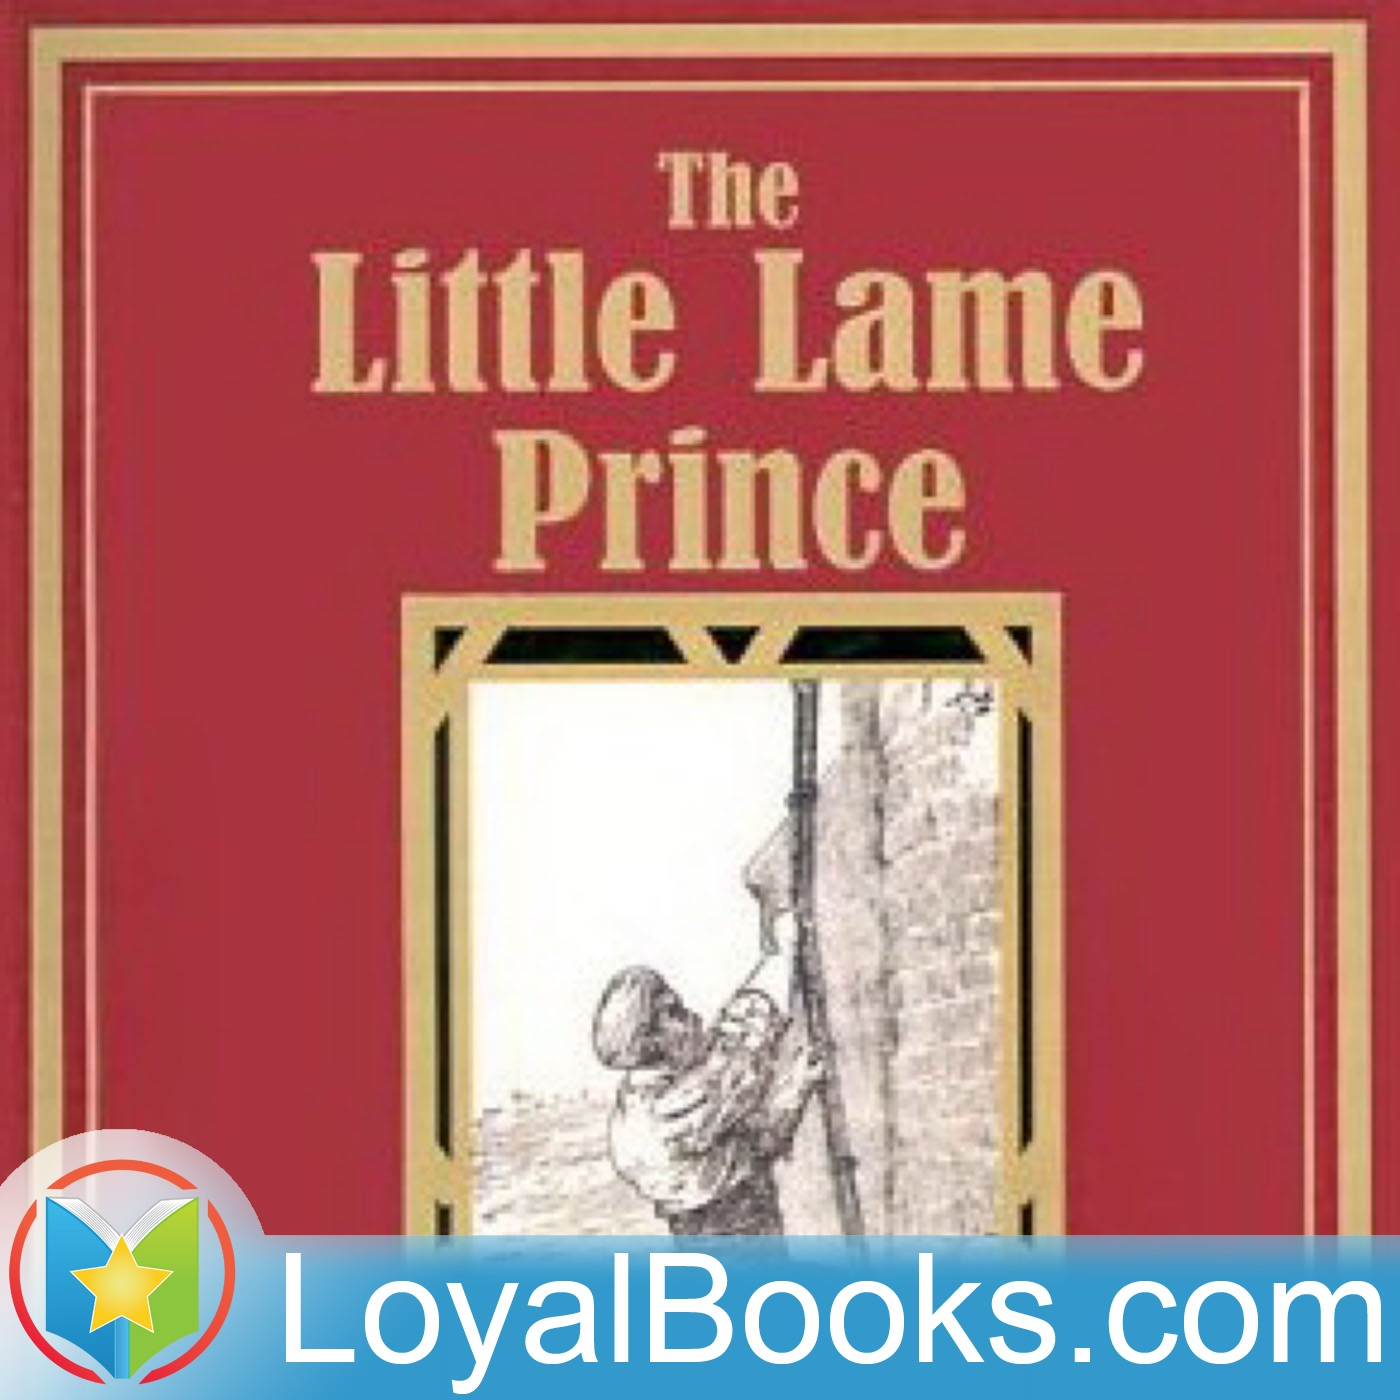 <![CDATA[The Little Lame Prince by Miss Mulock]]>